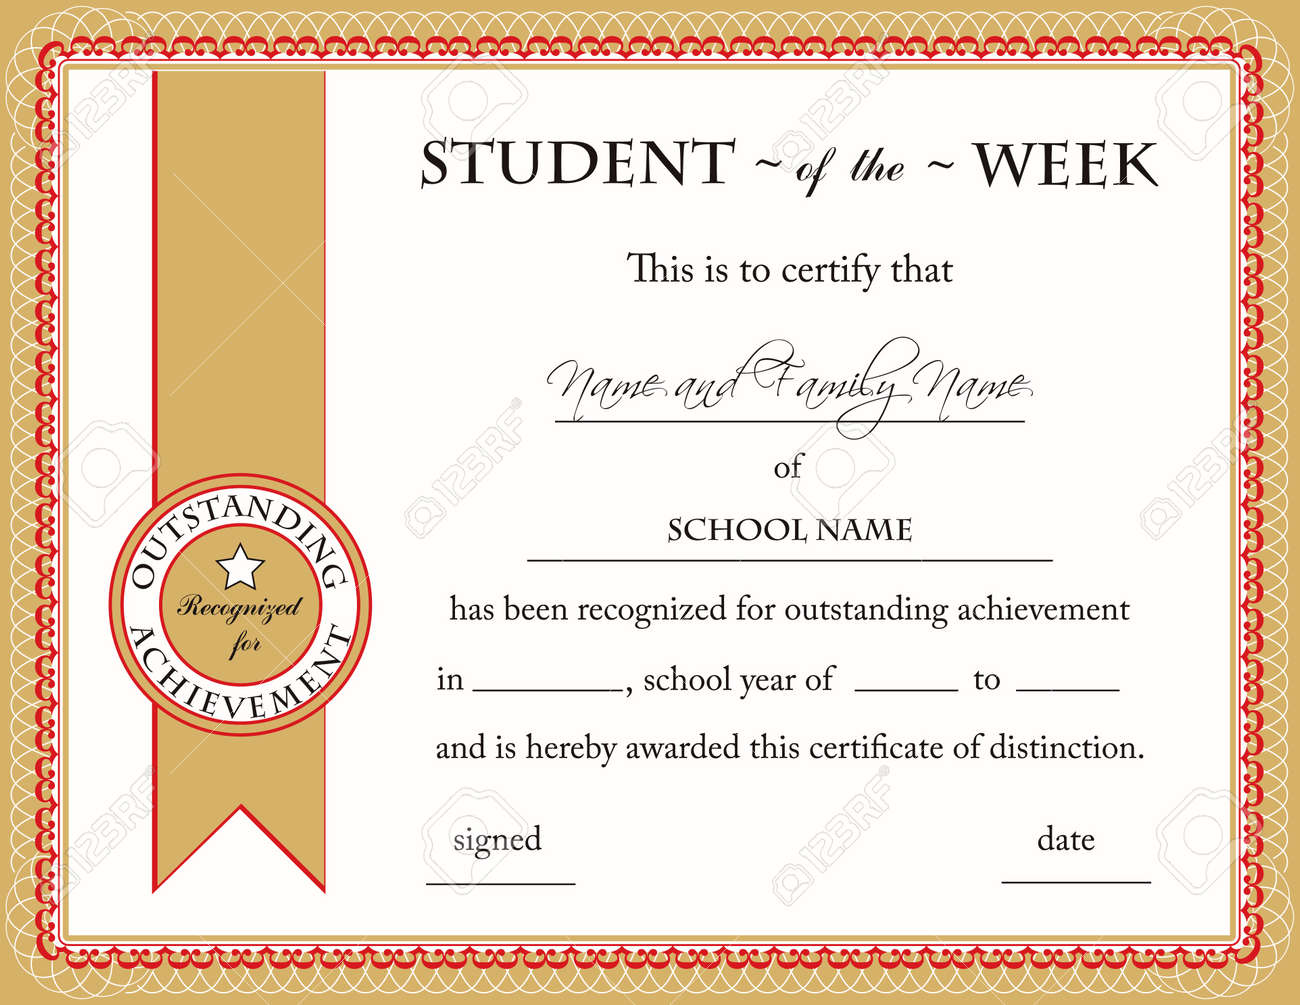 Student of the week certificate royalty free cliparts vectors student of the week certificate stock vector 7468135 xflitez Choice Image